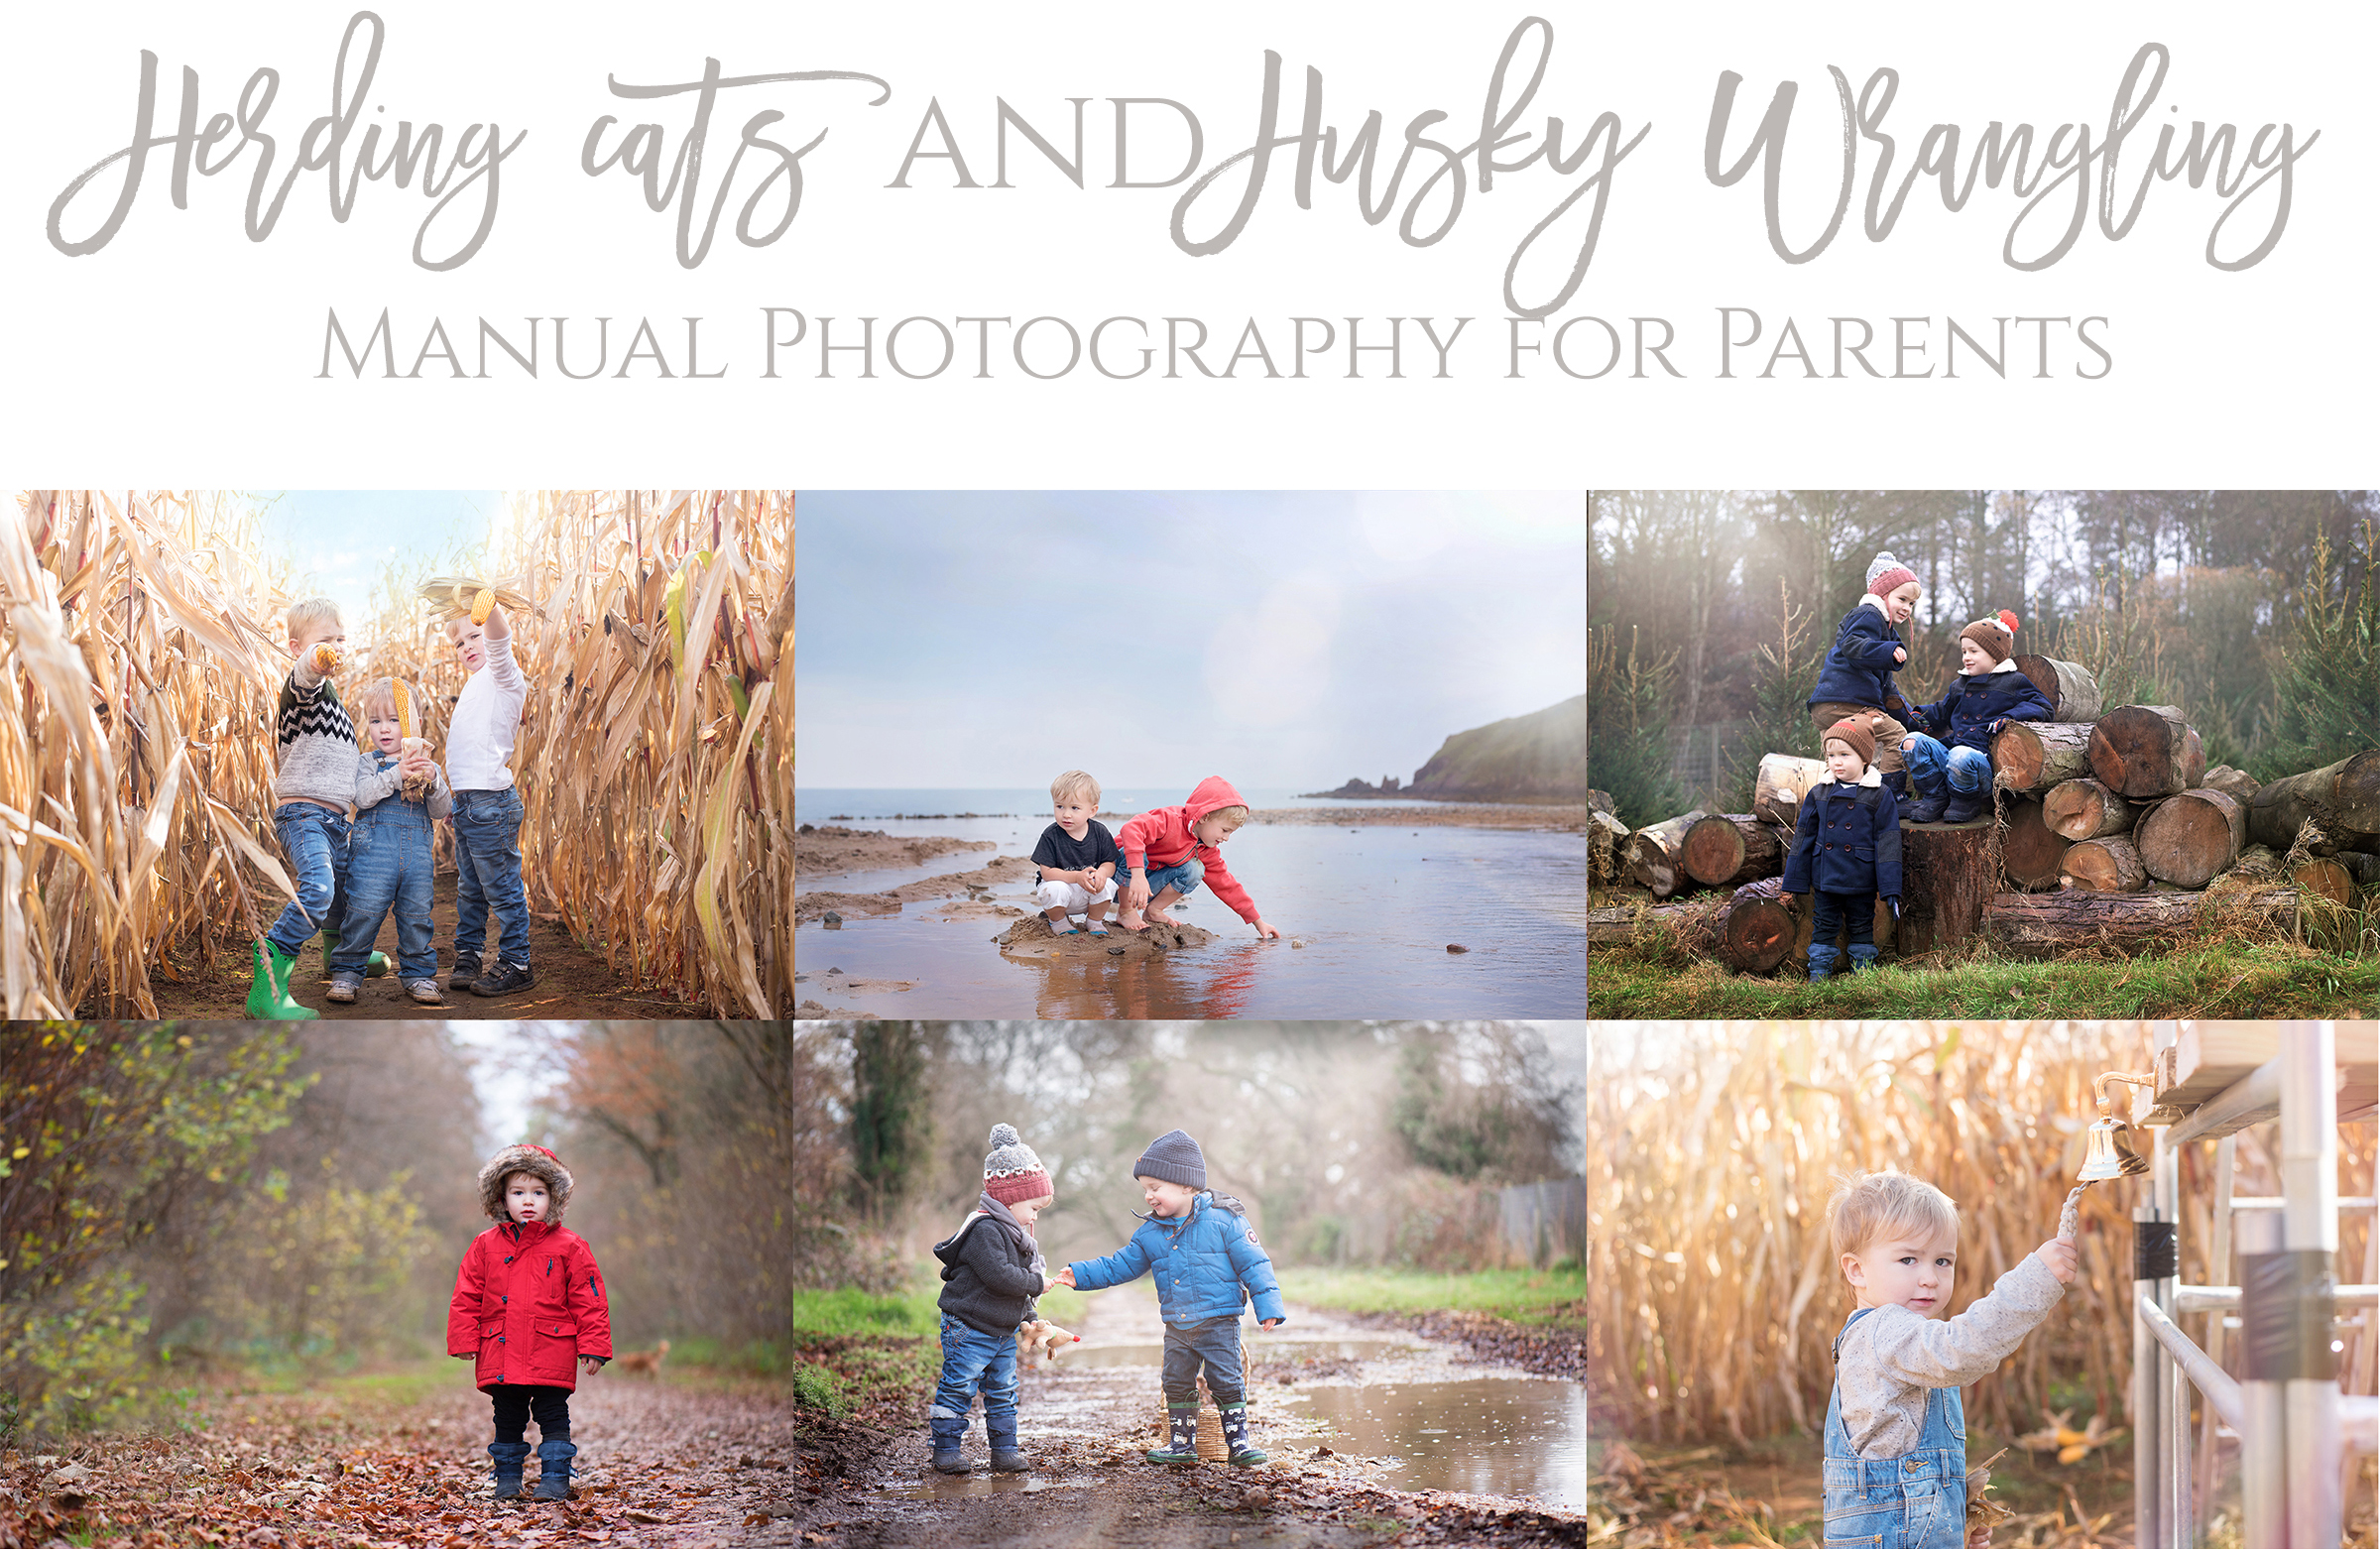 ONLINE MANUAL PHOTOGRAPHY COURSE FOR PARENTS